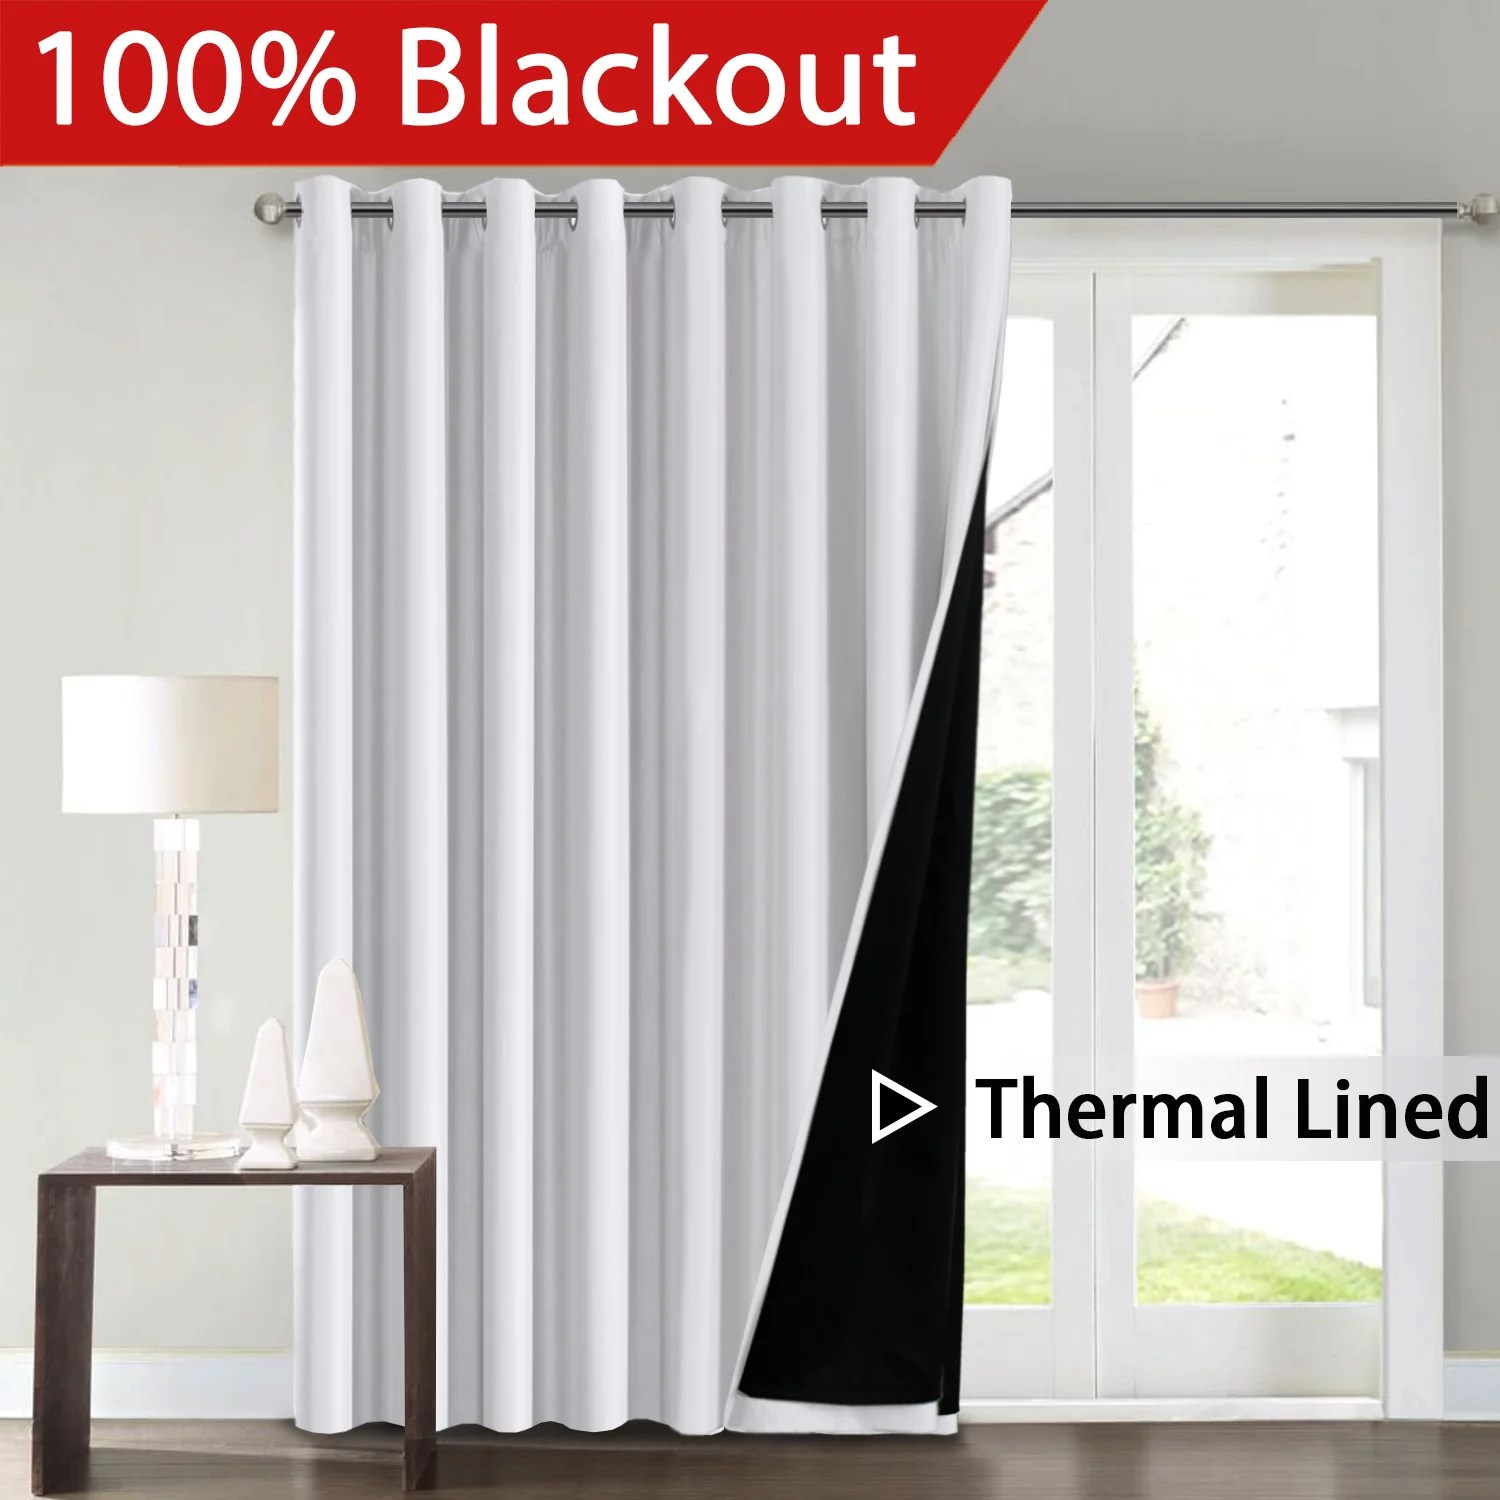 Thermal Patio Door Curtains With Grommets Flamingop Full Blackout White Wide Patio Door Curtains Faux Silk Satin With Black Liner Thermal Insulated Room Divider Window Treatment Panels